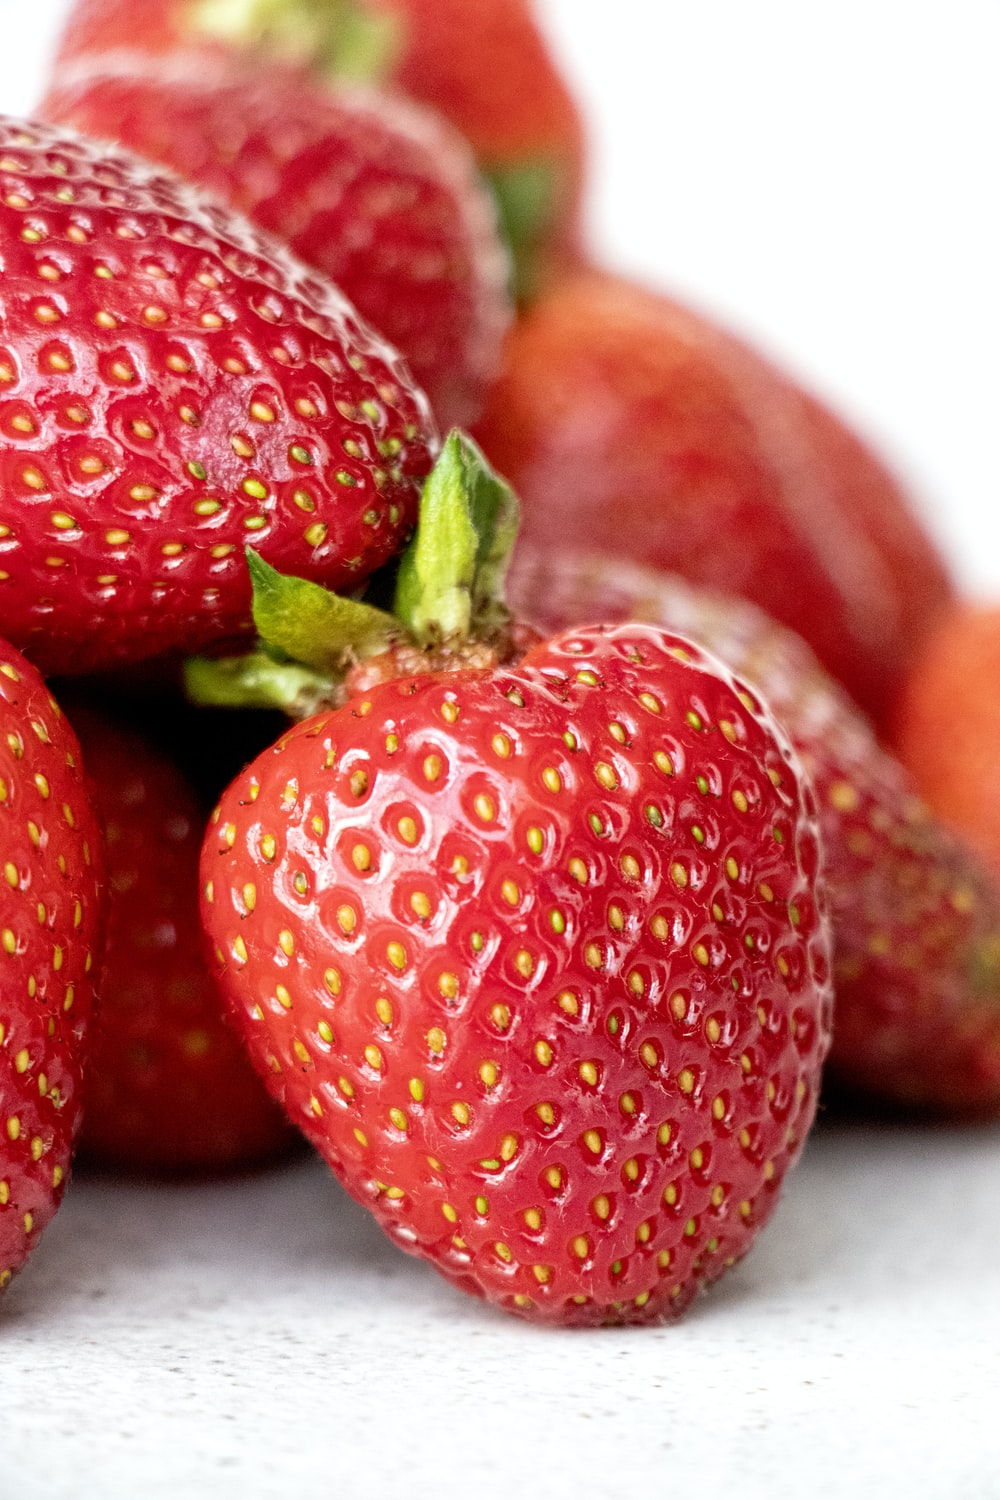 red strawberries in close up photography